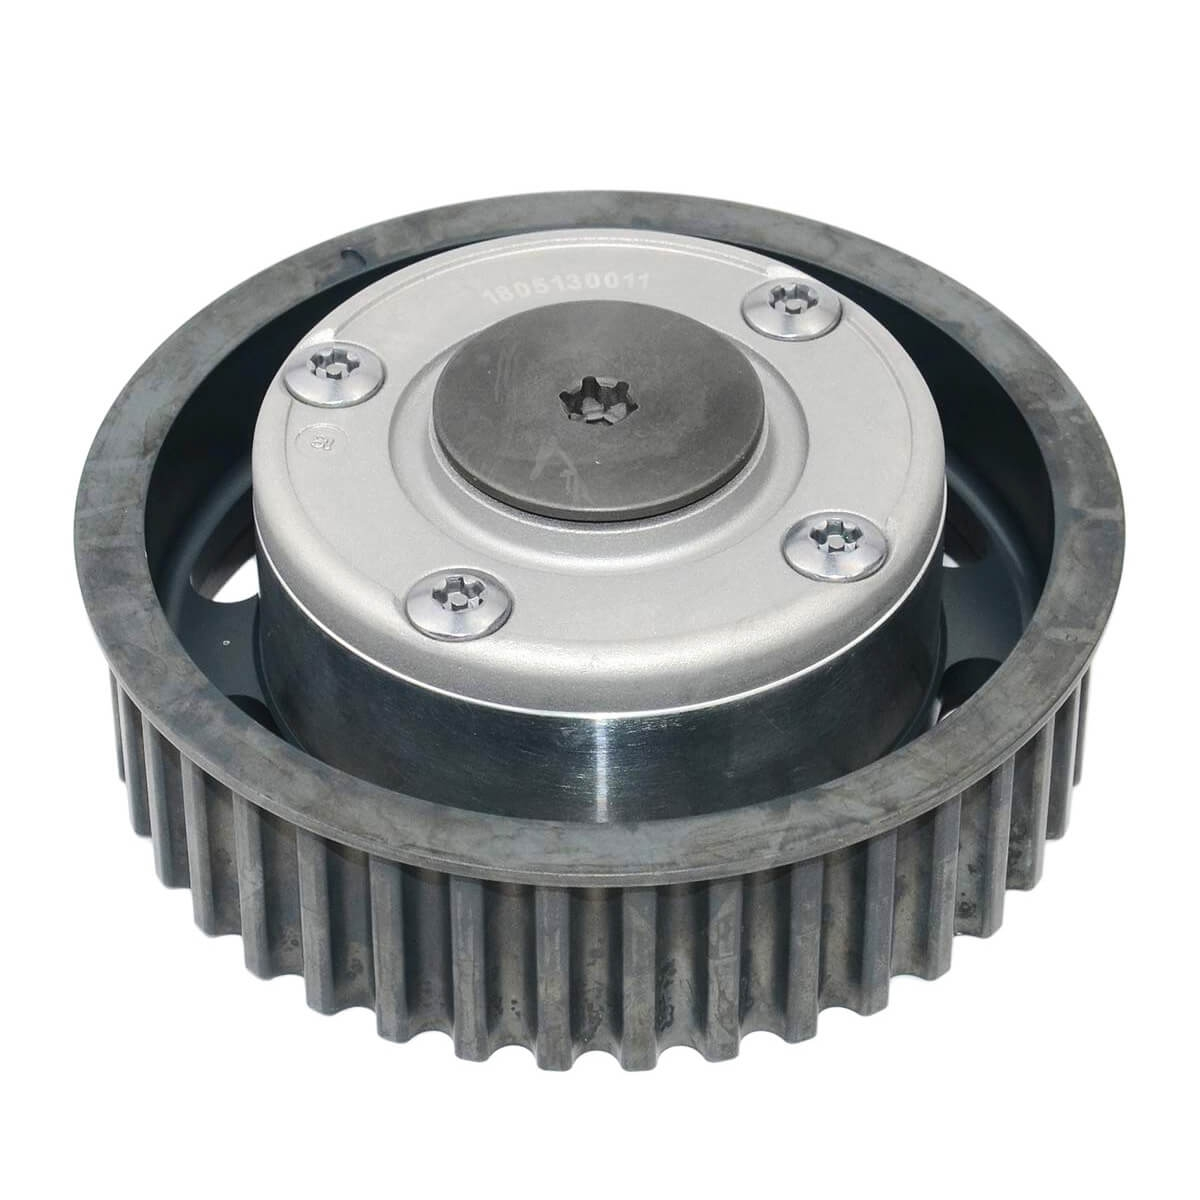 FORD EXPLORER Cam Dephaser Pulley